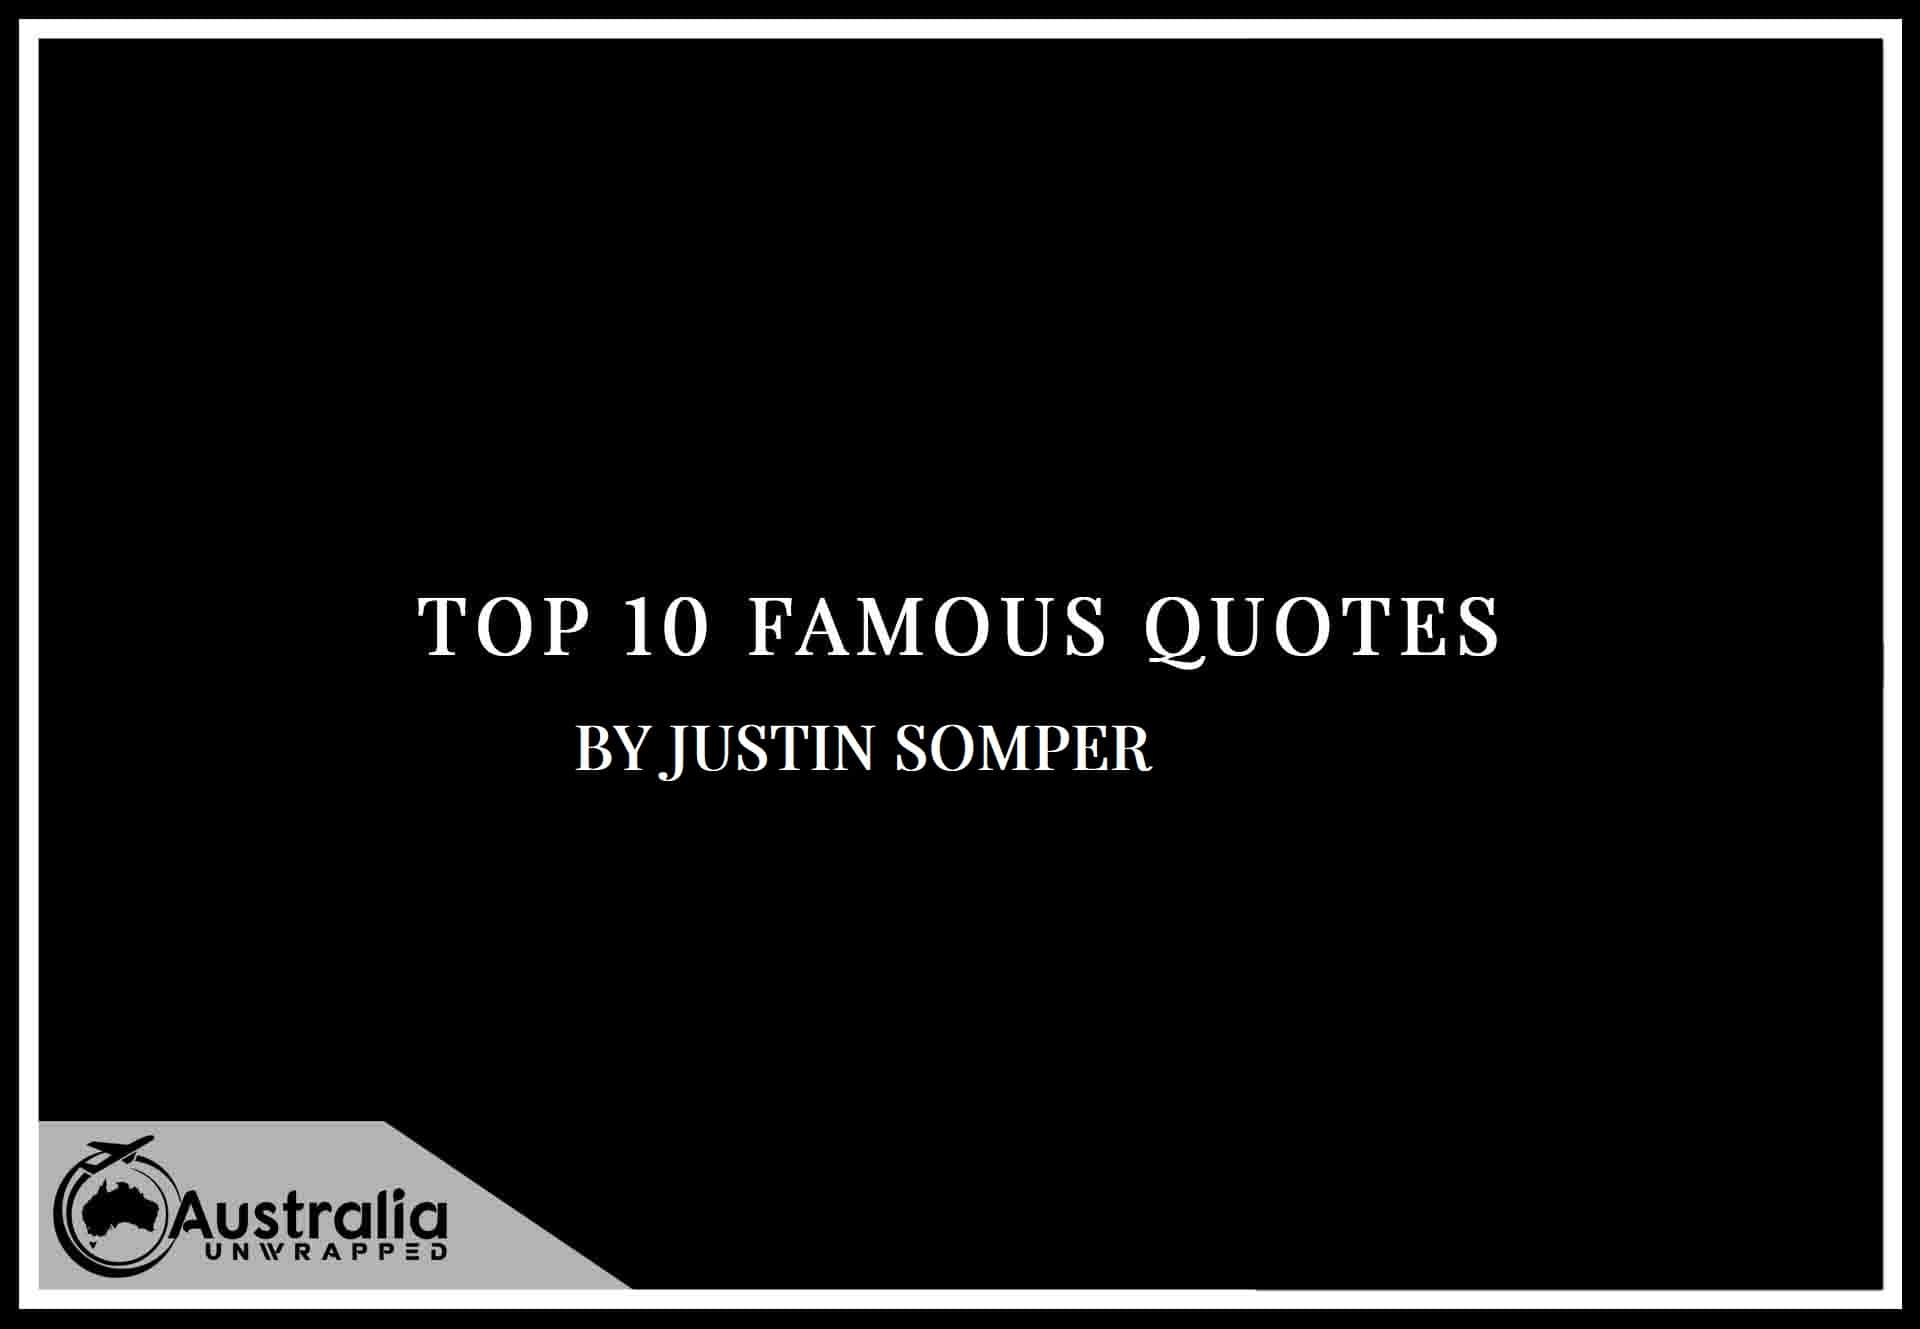 Top 10 Famous Quotes by Author Justin Somper